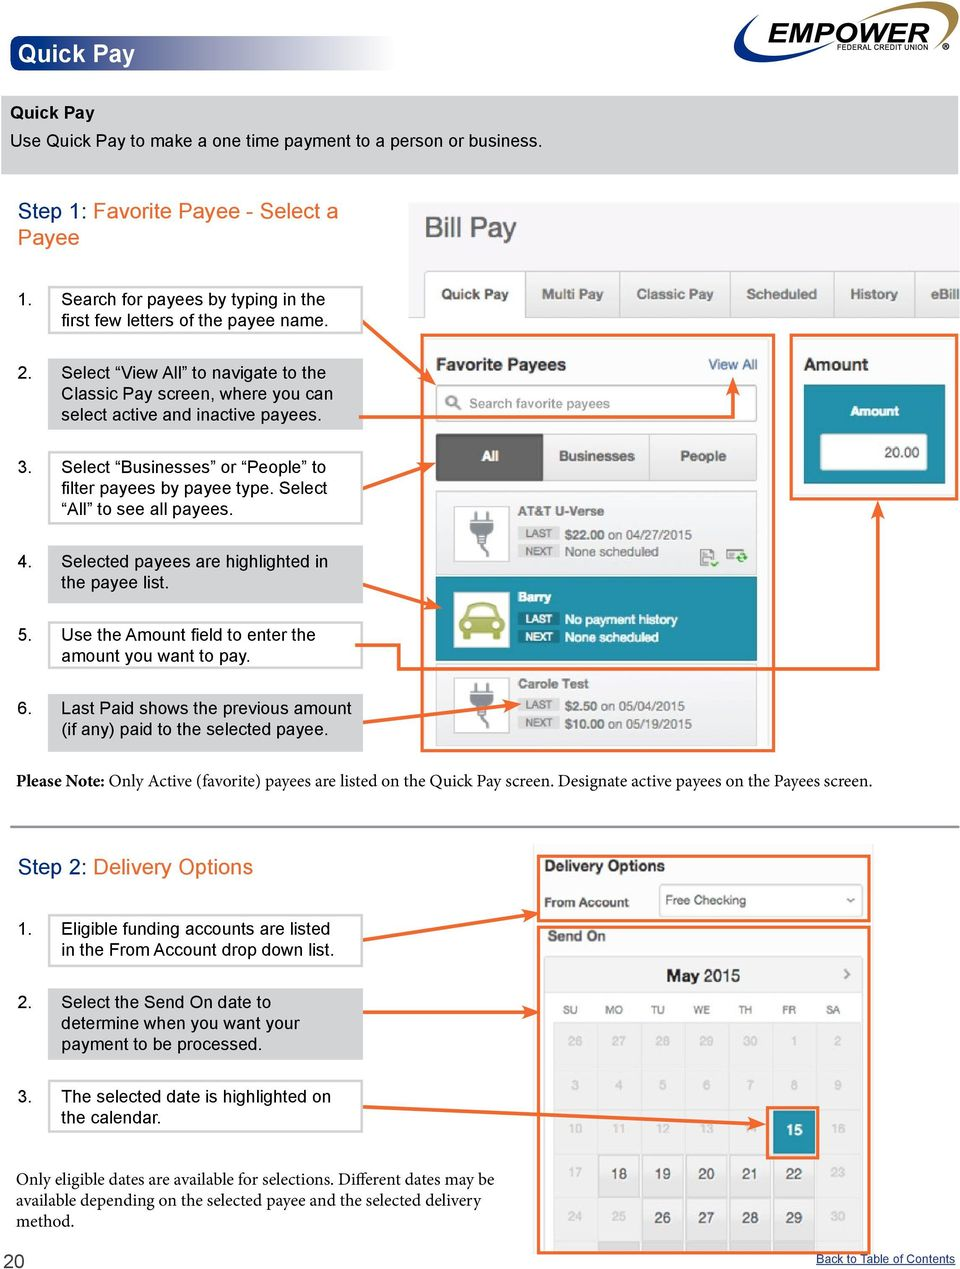 4. Selected payees are highlighted in the payee list. 5. Use the Amount field to enter the amount you want to pay. 6. Last Paid shows the previous amount (if any) paid to the selected payee.